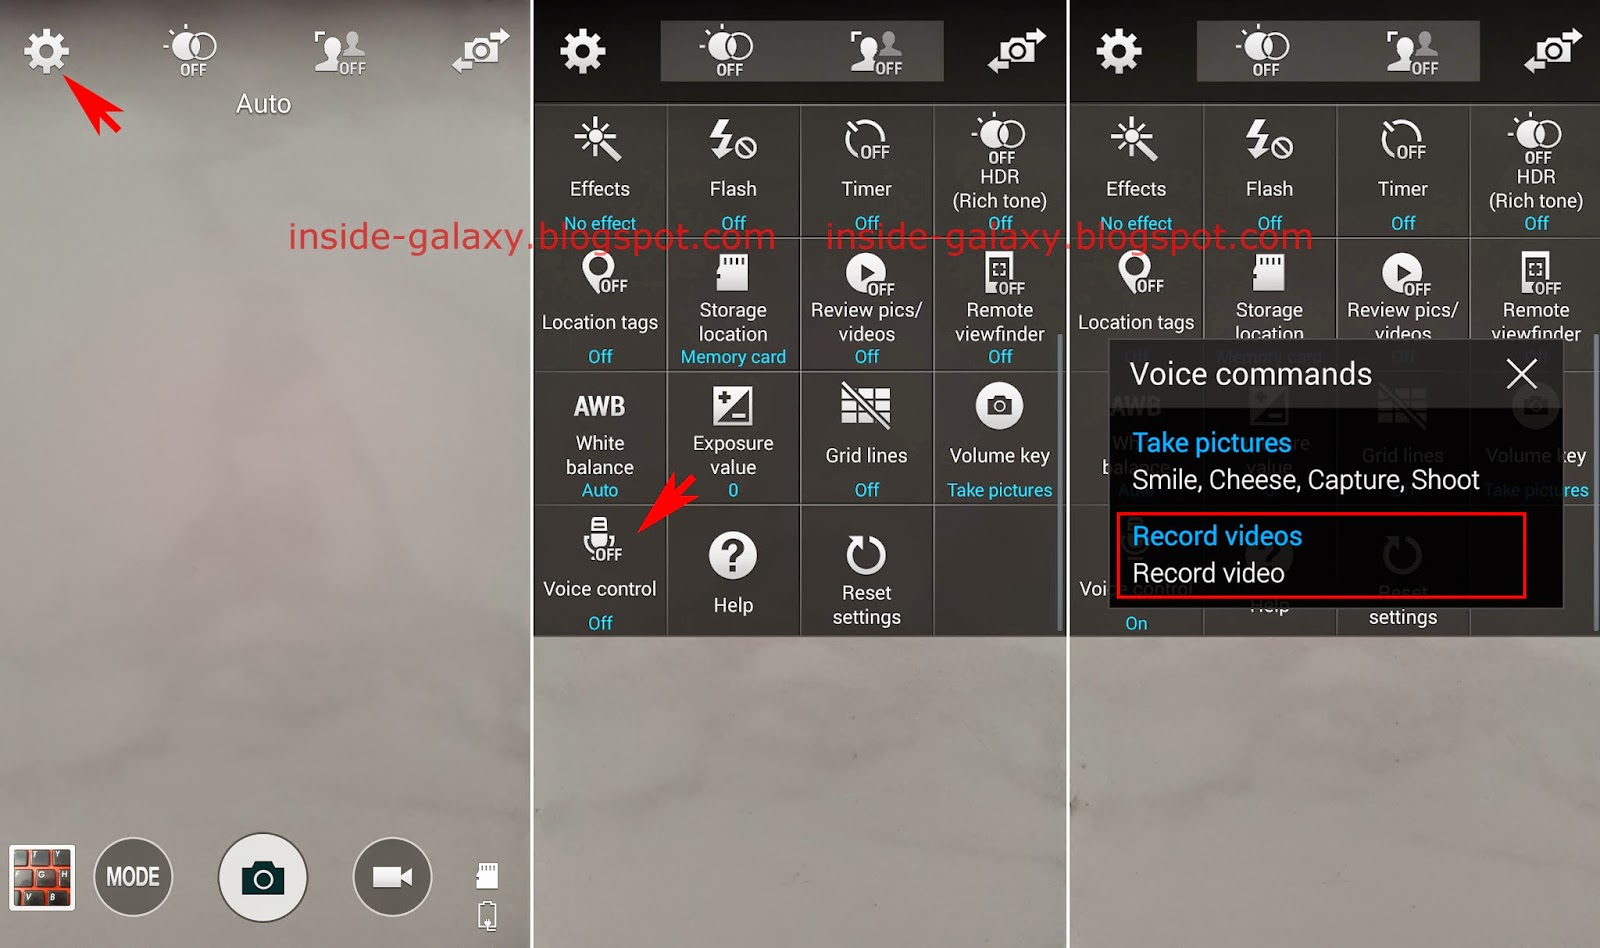 Samsung Galaxy S5: How to Record Video Using Voice Command